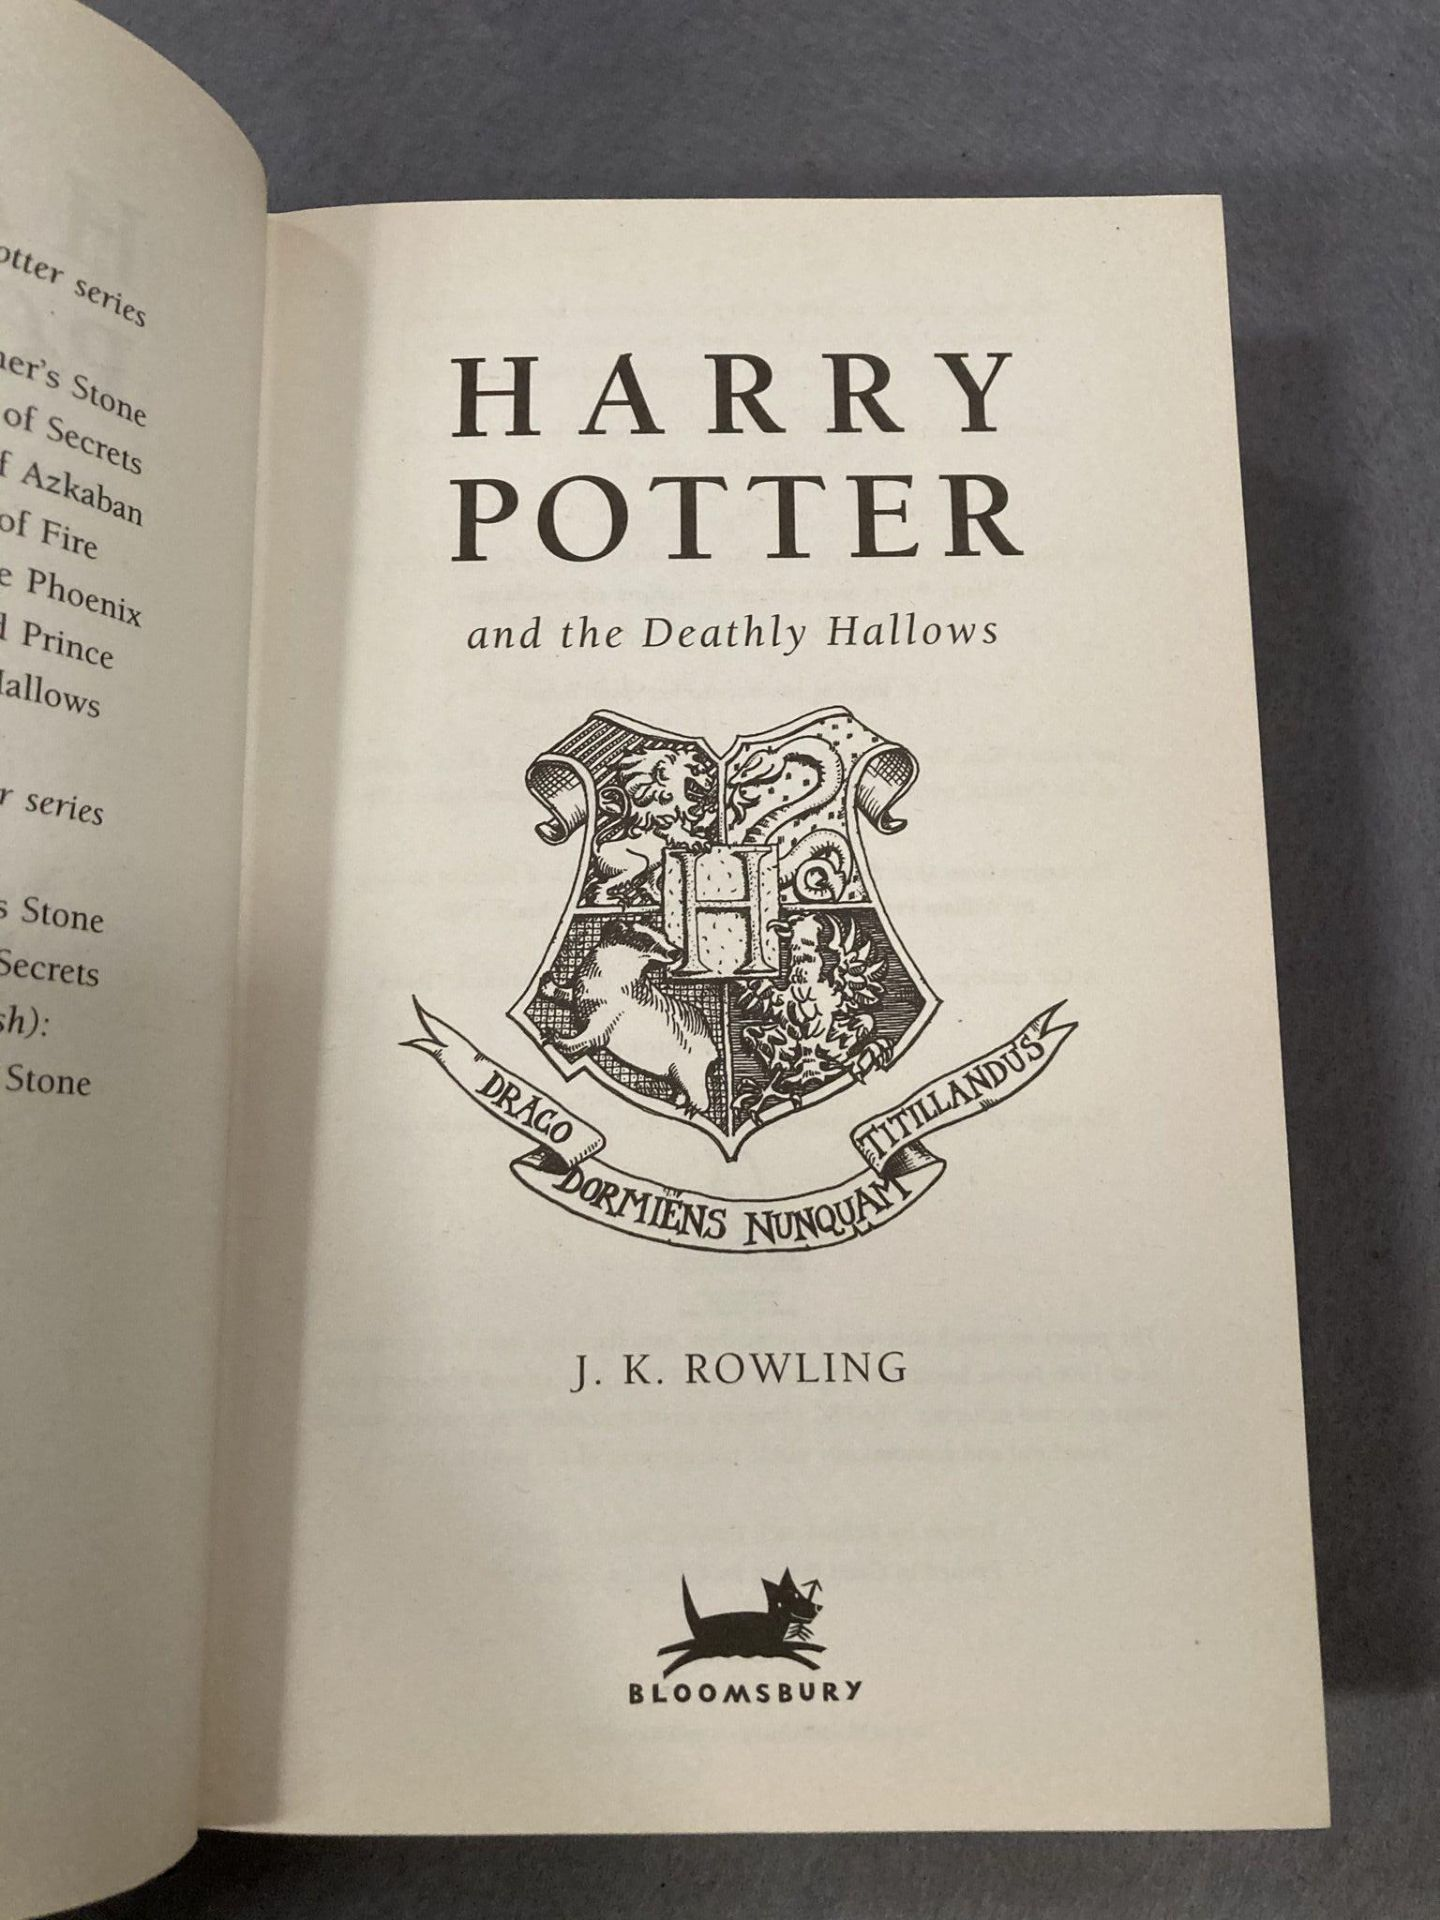 J K Rowling three Harry Potter First Editions published by Bloomsbury all complete with dust - Image 6 of 7